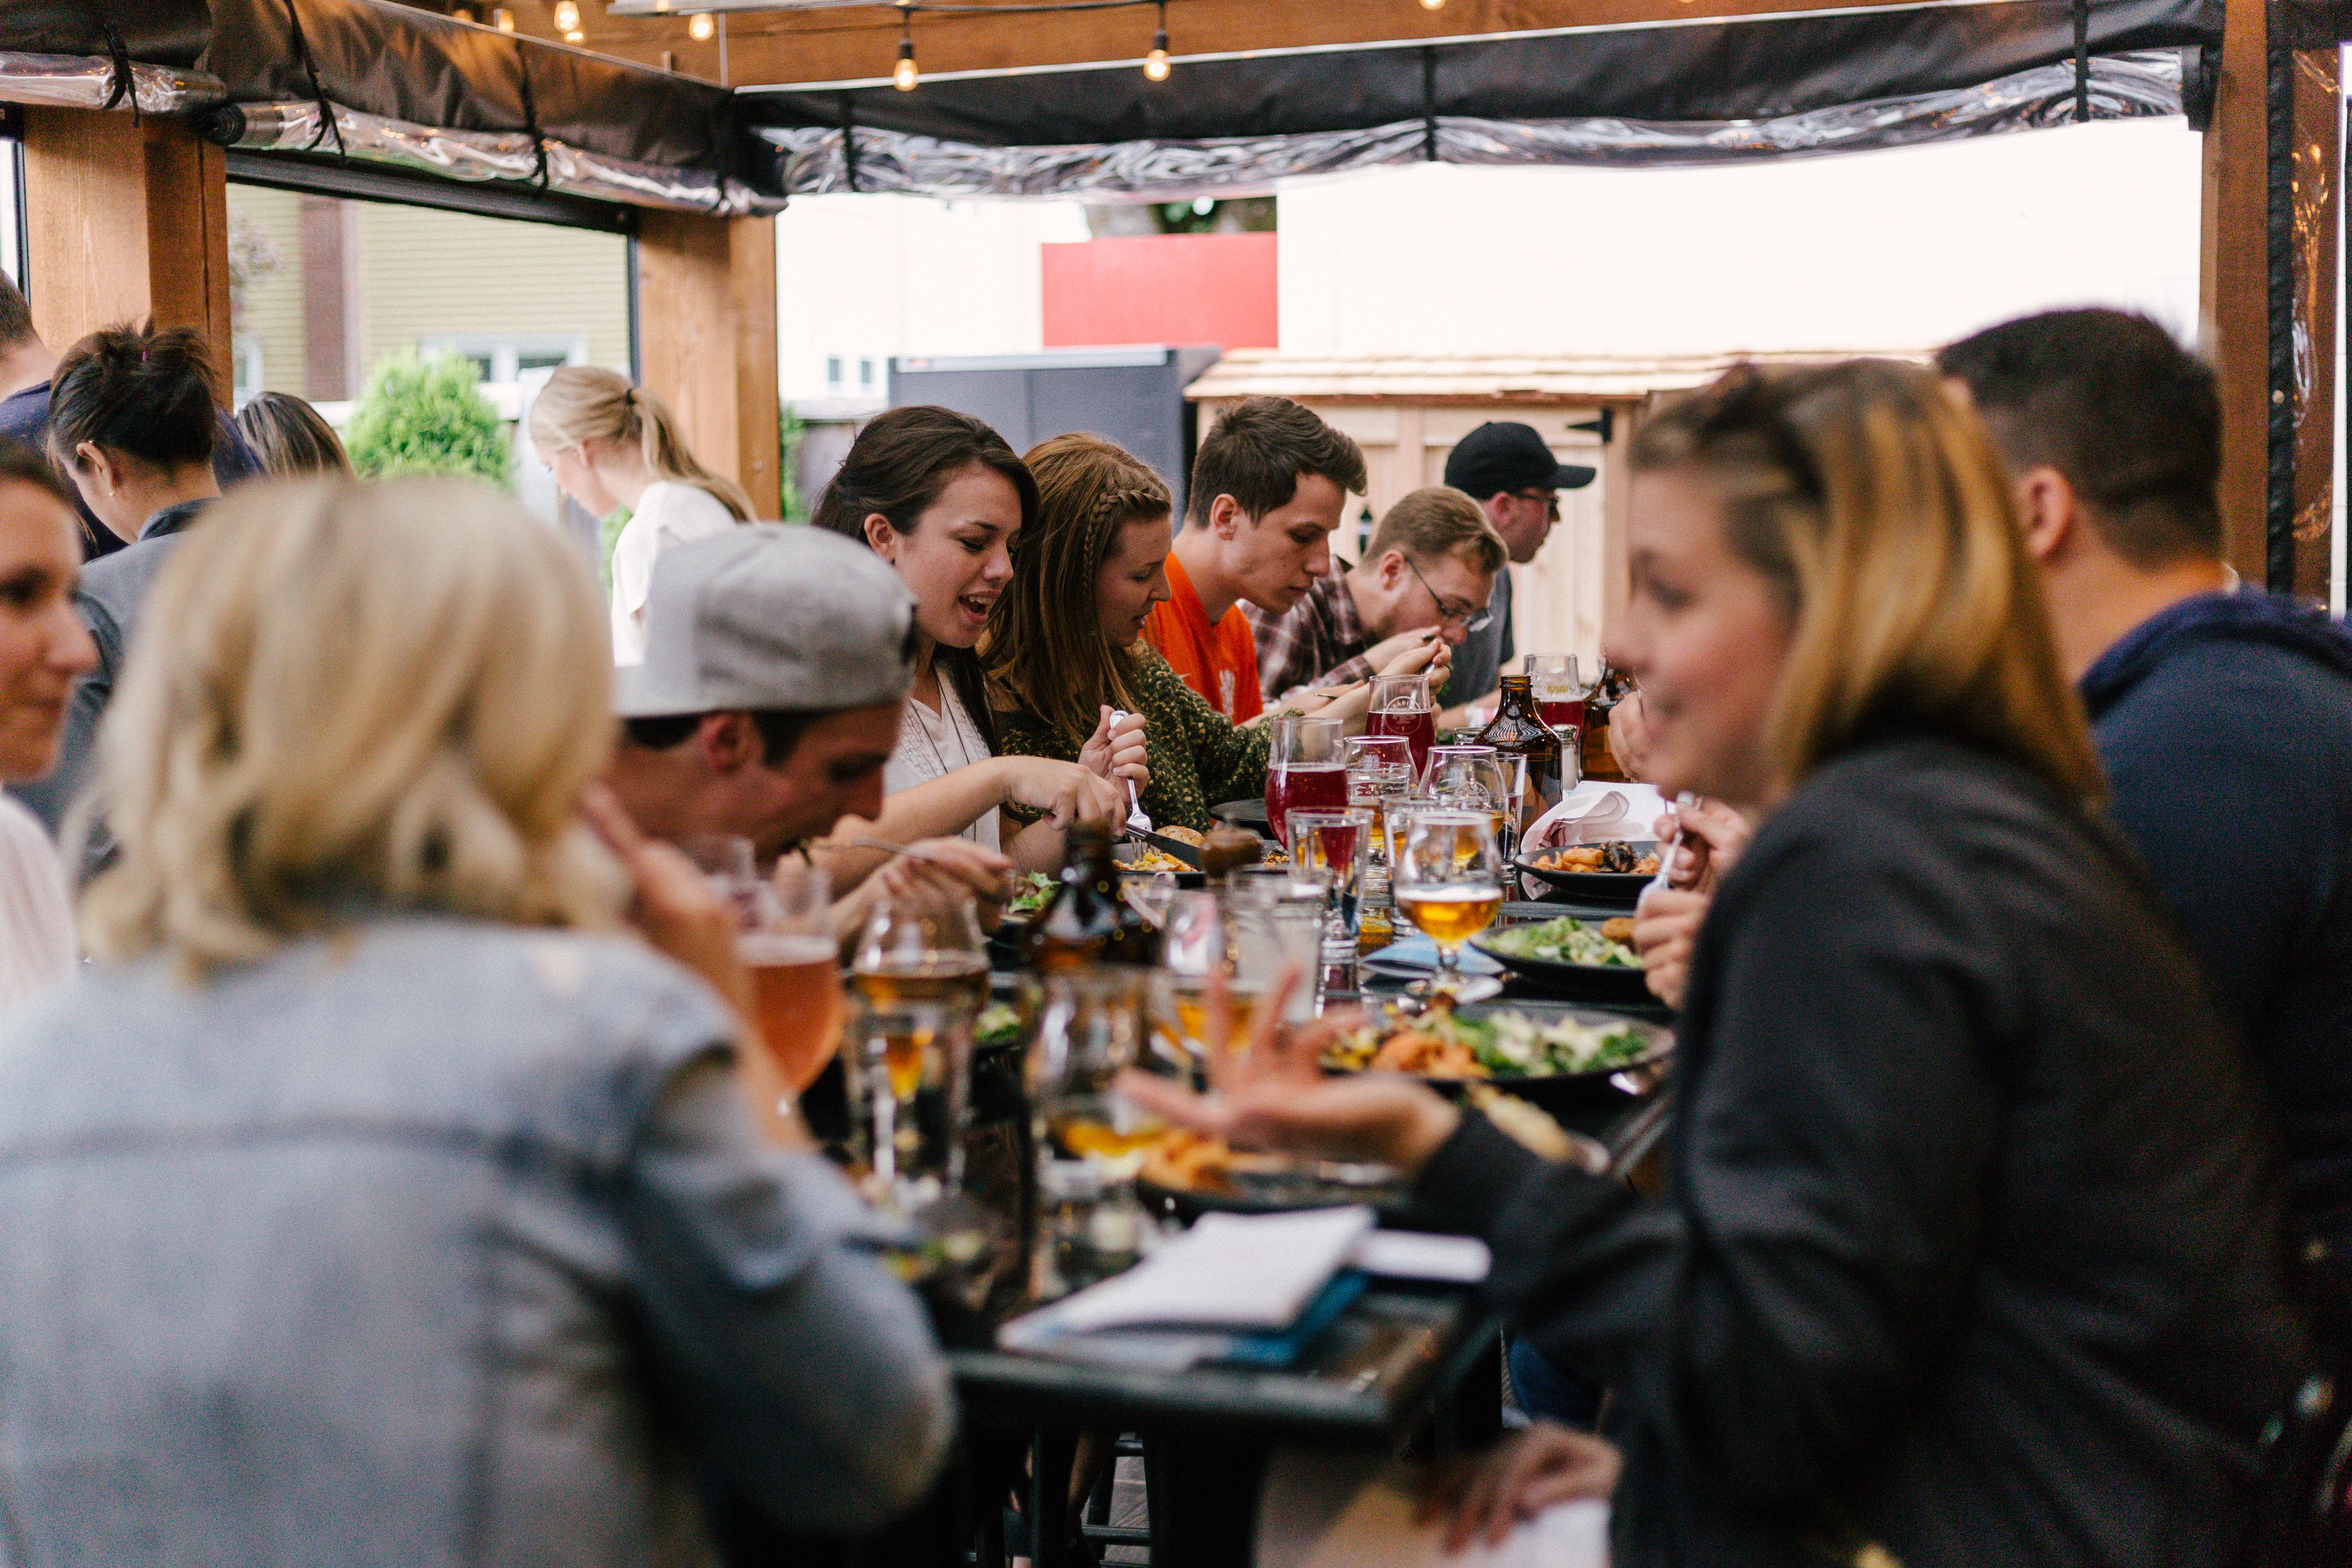 6 Ways to Increase Restaurant Sales: Tips and Advice